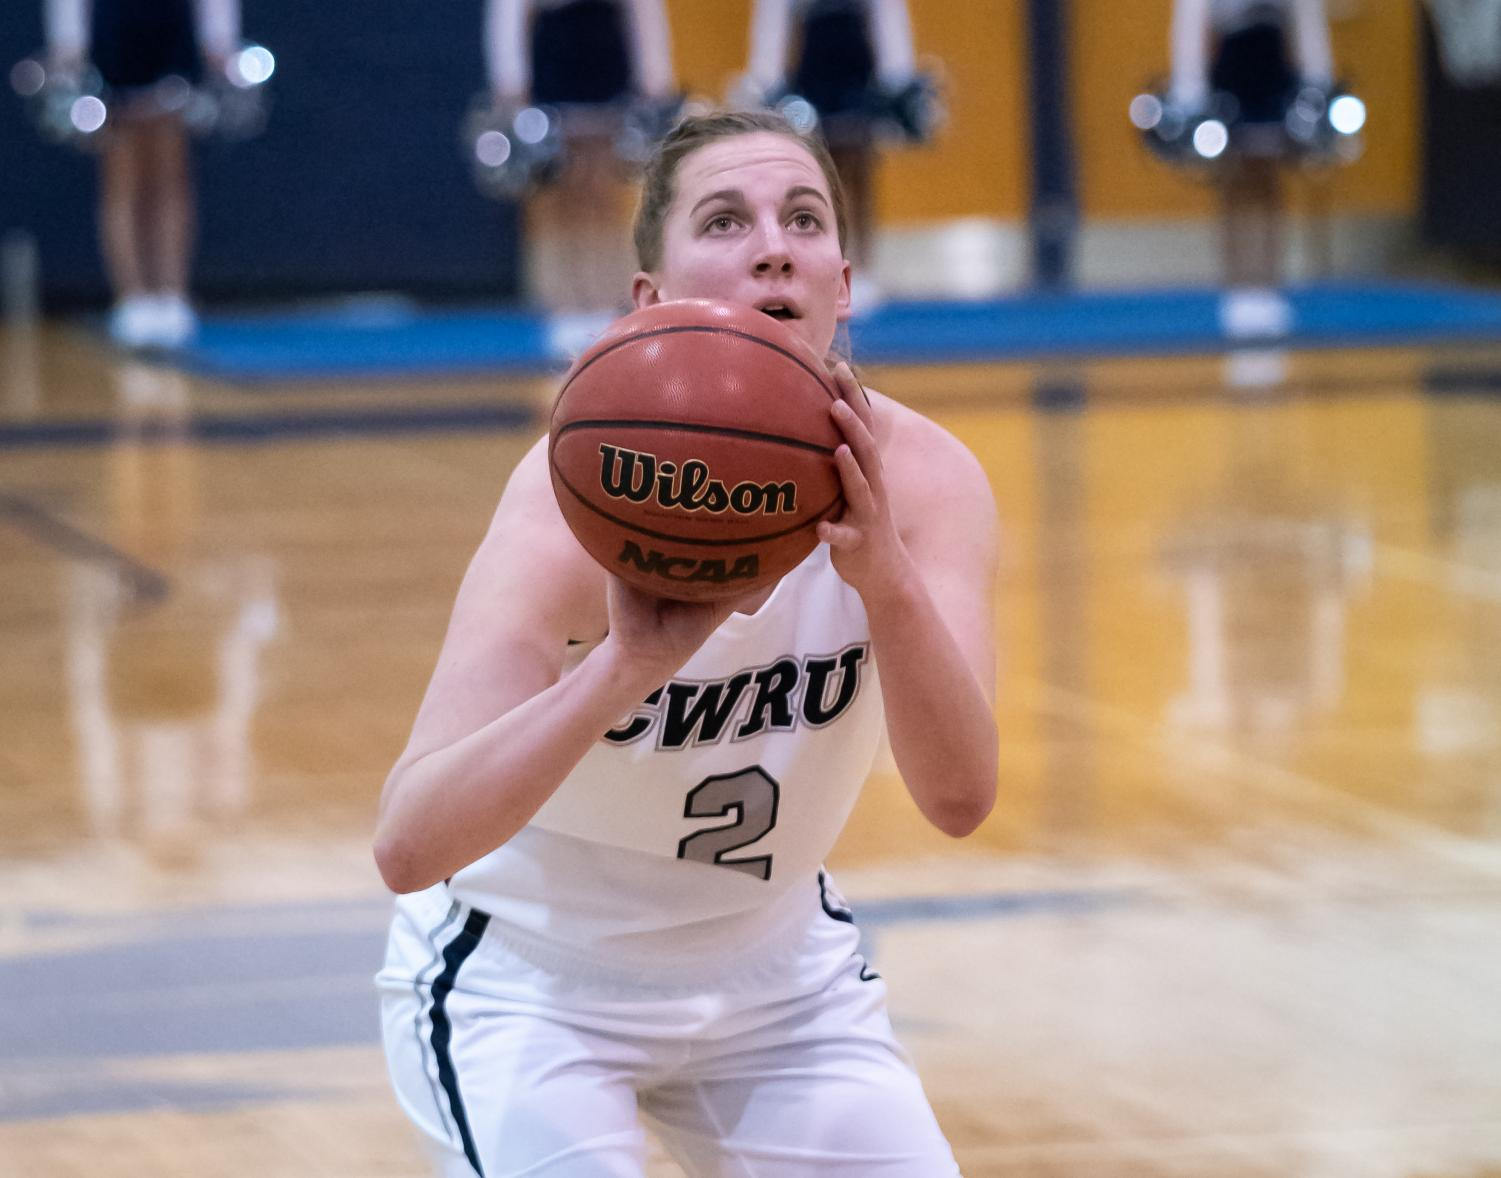 Graduate student Kara Hageman recorded 20 points and fourteen rebounds, hitting the 1400 career points mark when the women's basketball team competed against University of Rochester.